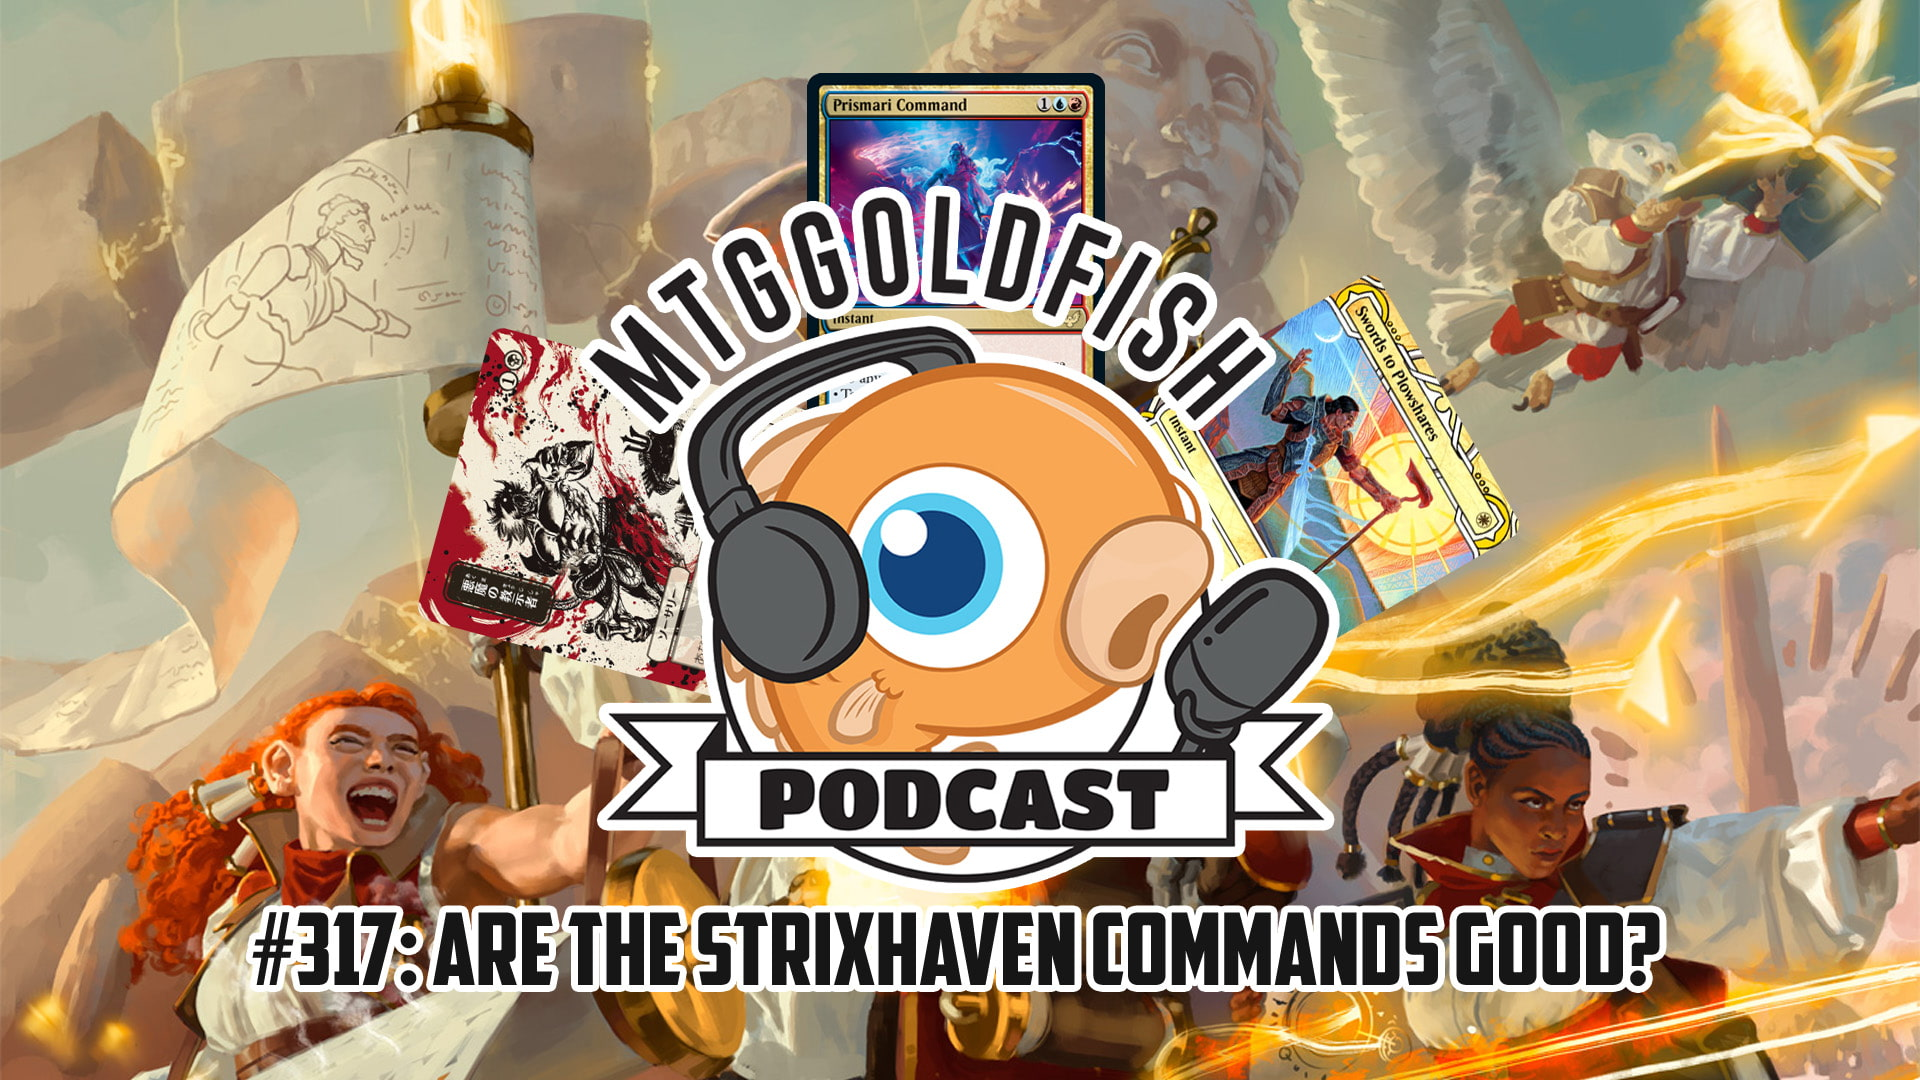 Image for Podcast 317: Are Strixhaven Commands Good?